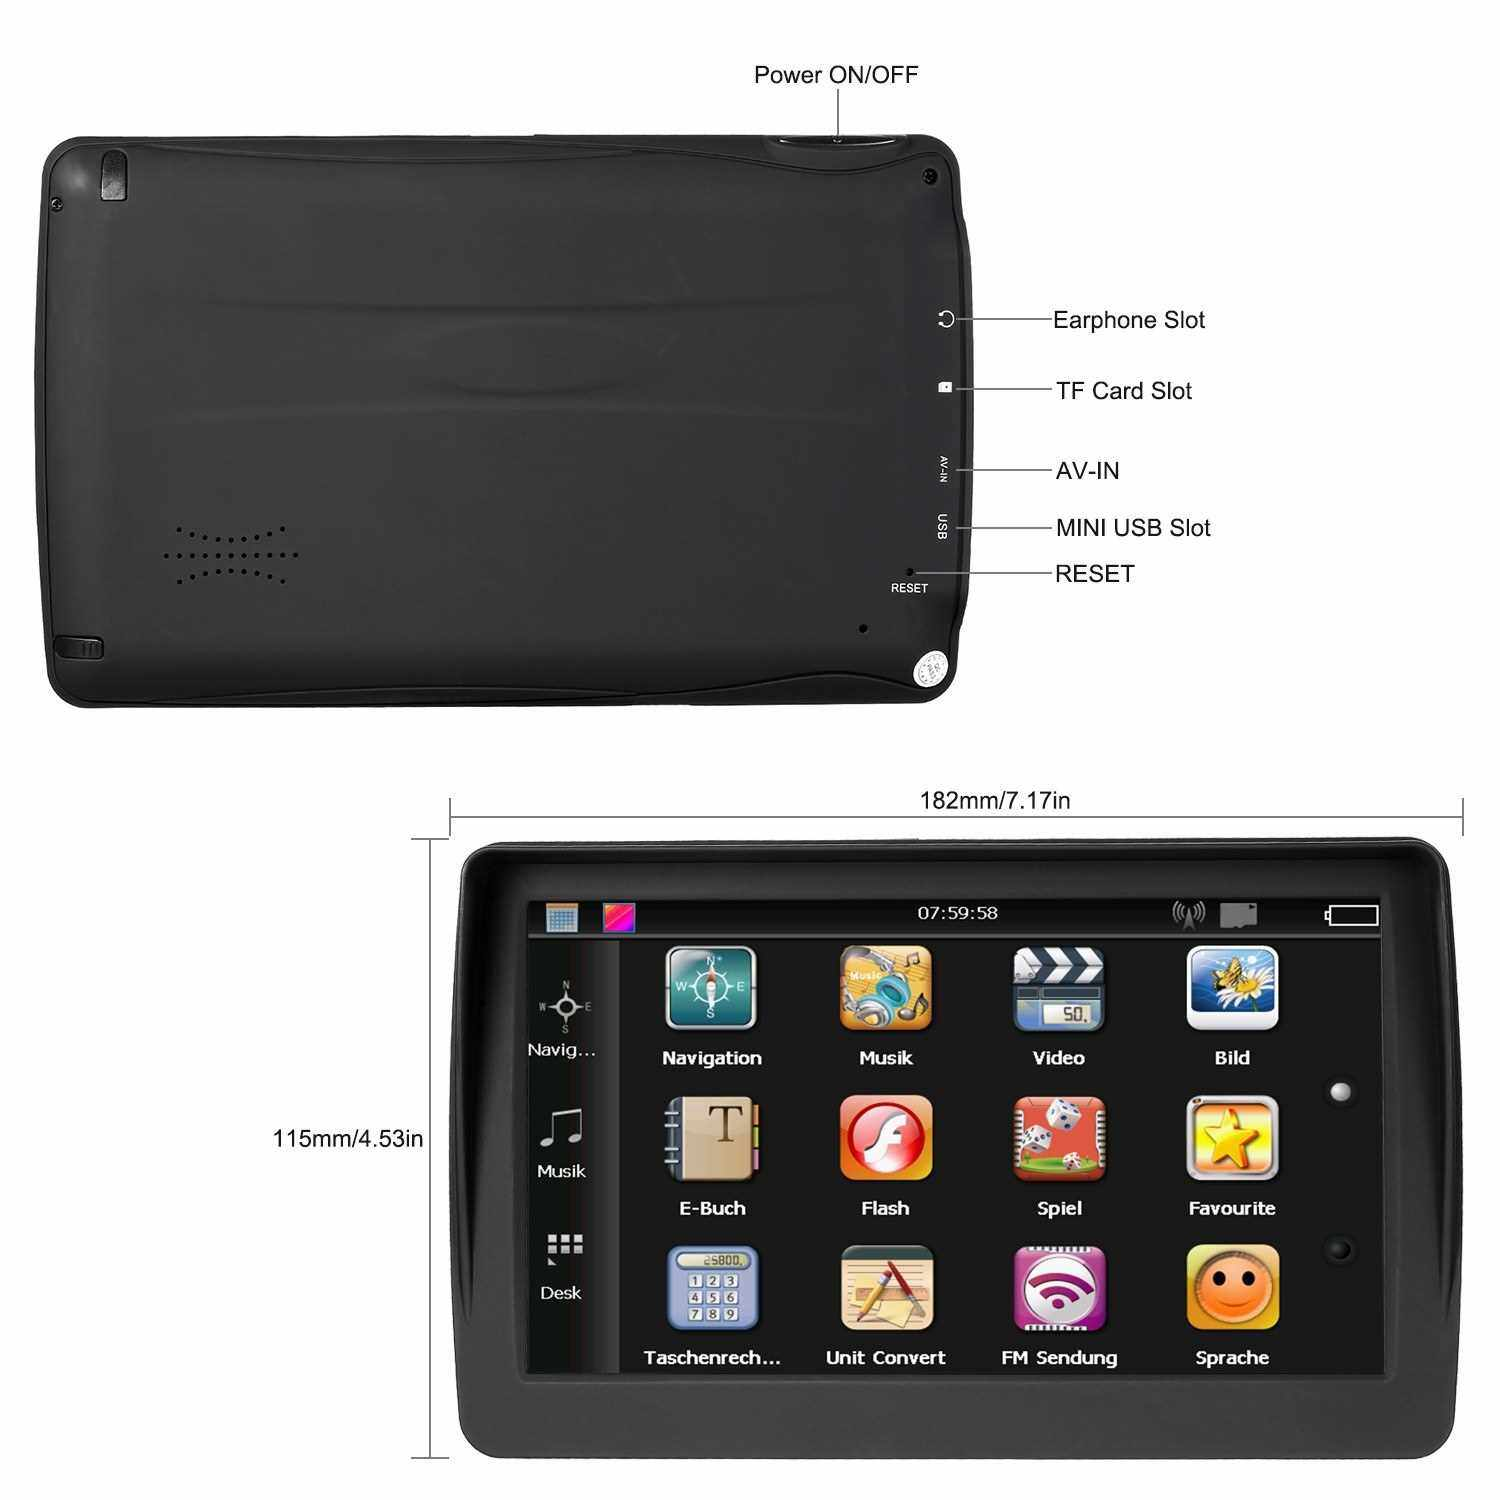 """Best Selling 7""""HD GPS Navigation System 8G Voice Guidance and Directional Speed Limit Alerts with 3D Europe Maps (Eu)"""